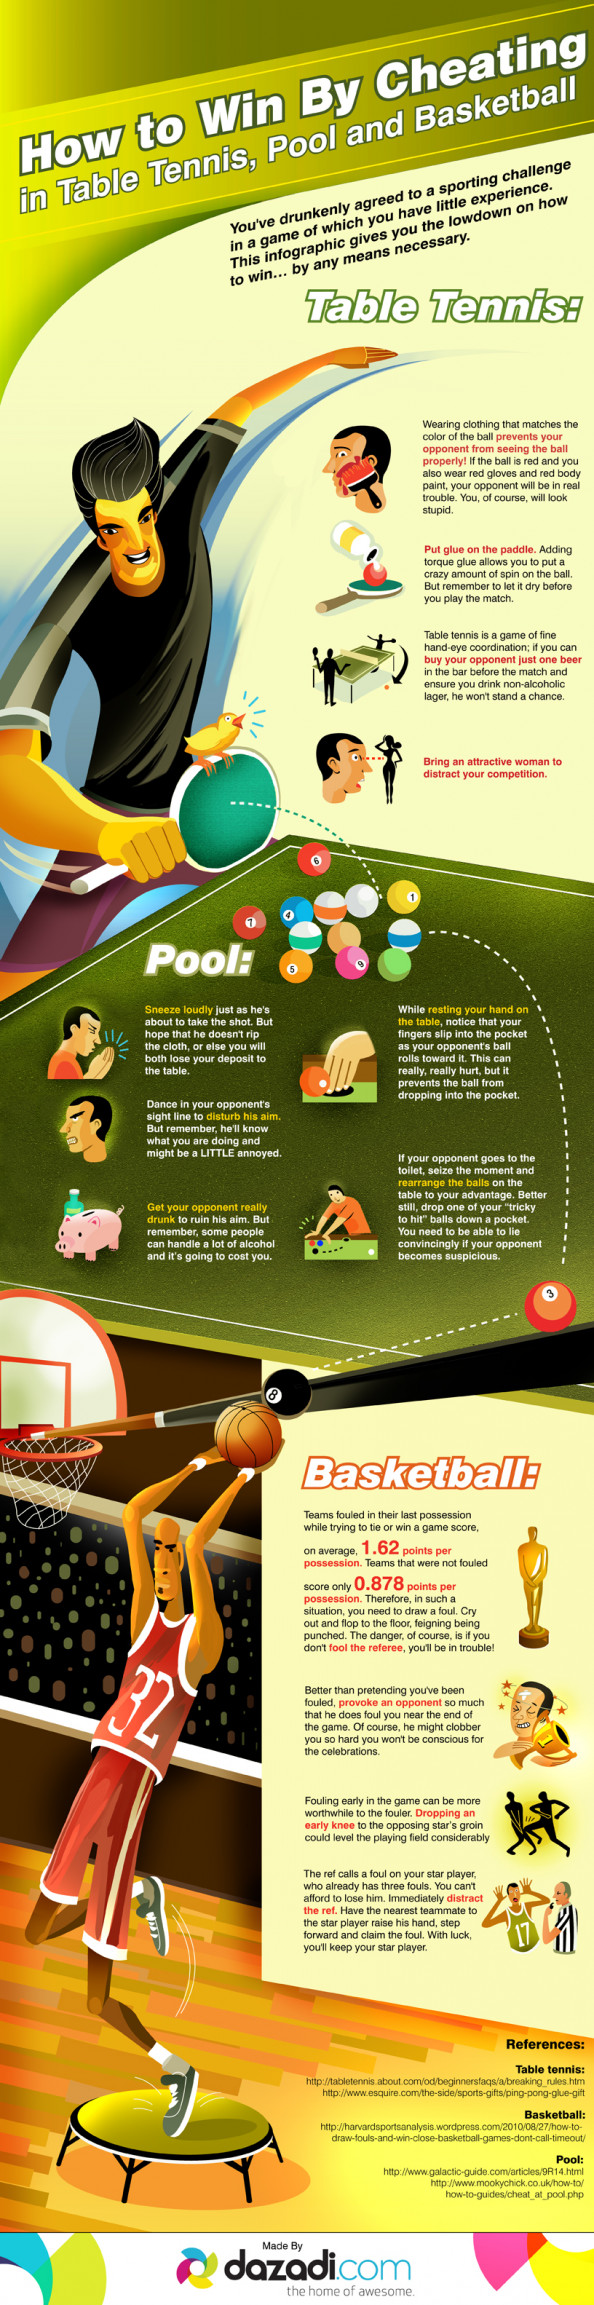 How To Win By Cheating in Table Tennis, Pool, and Basketball Infographic